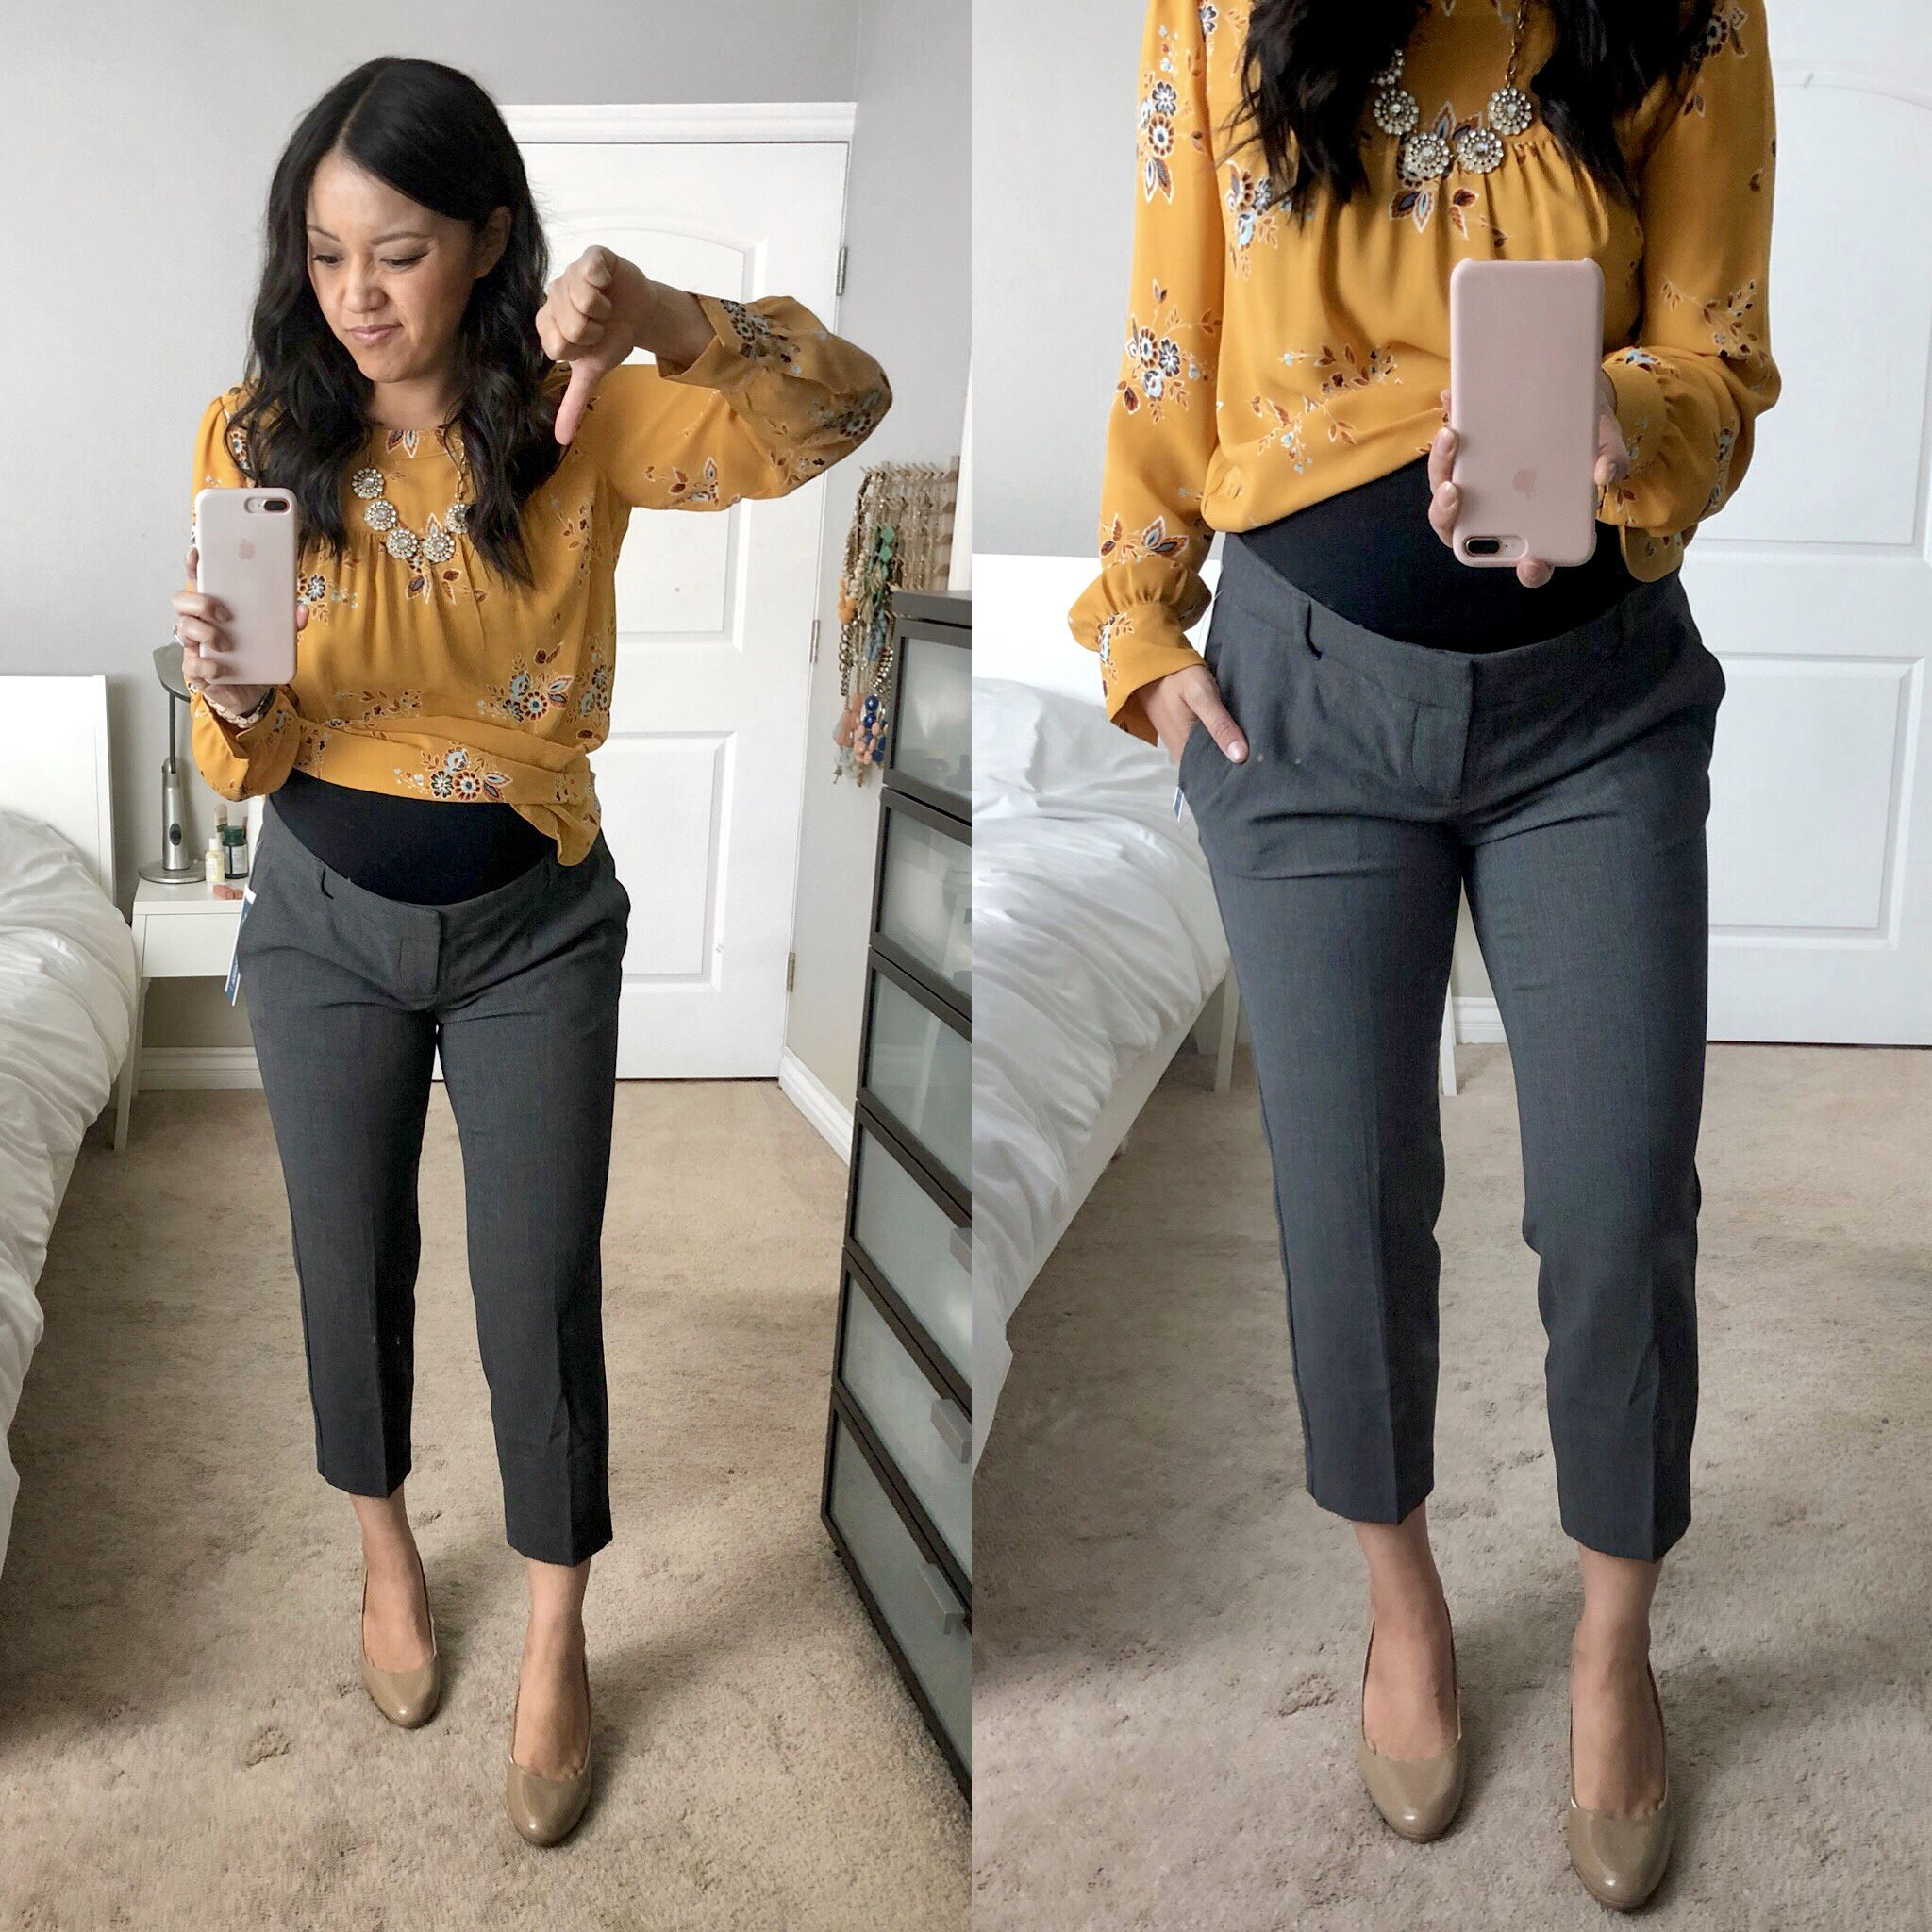 2d6788fd94a87 REVIEWS: Athletic and Athleisure Gear + Business Casual Maternity Pants,  Jeans, and More!